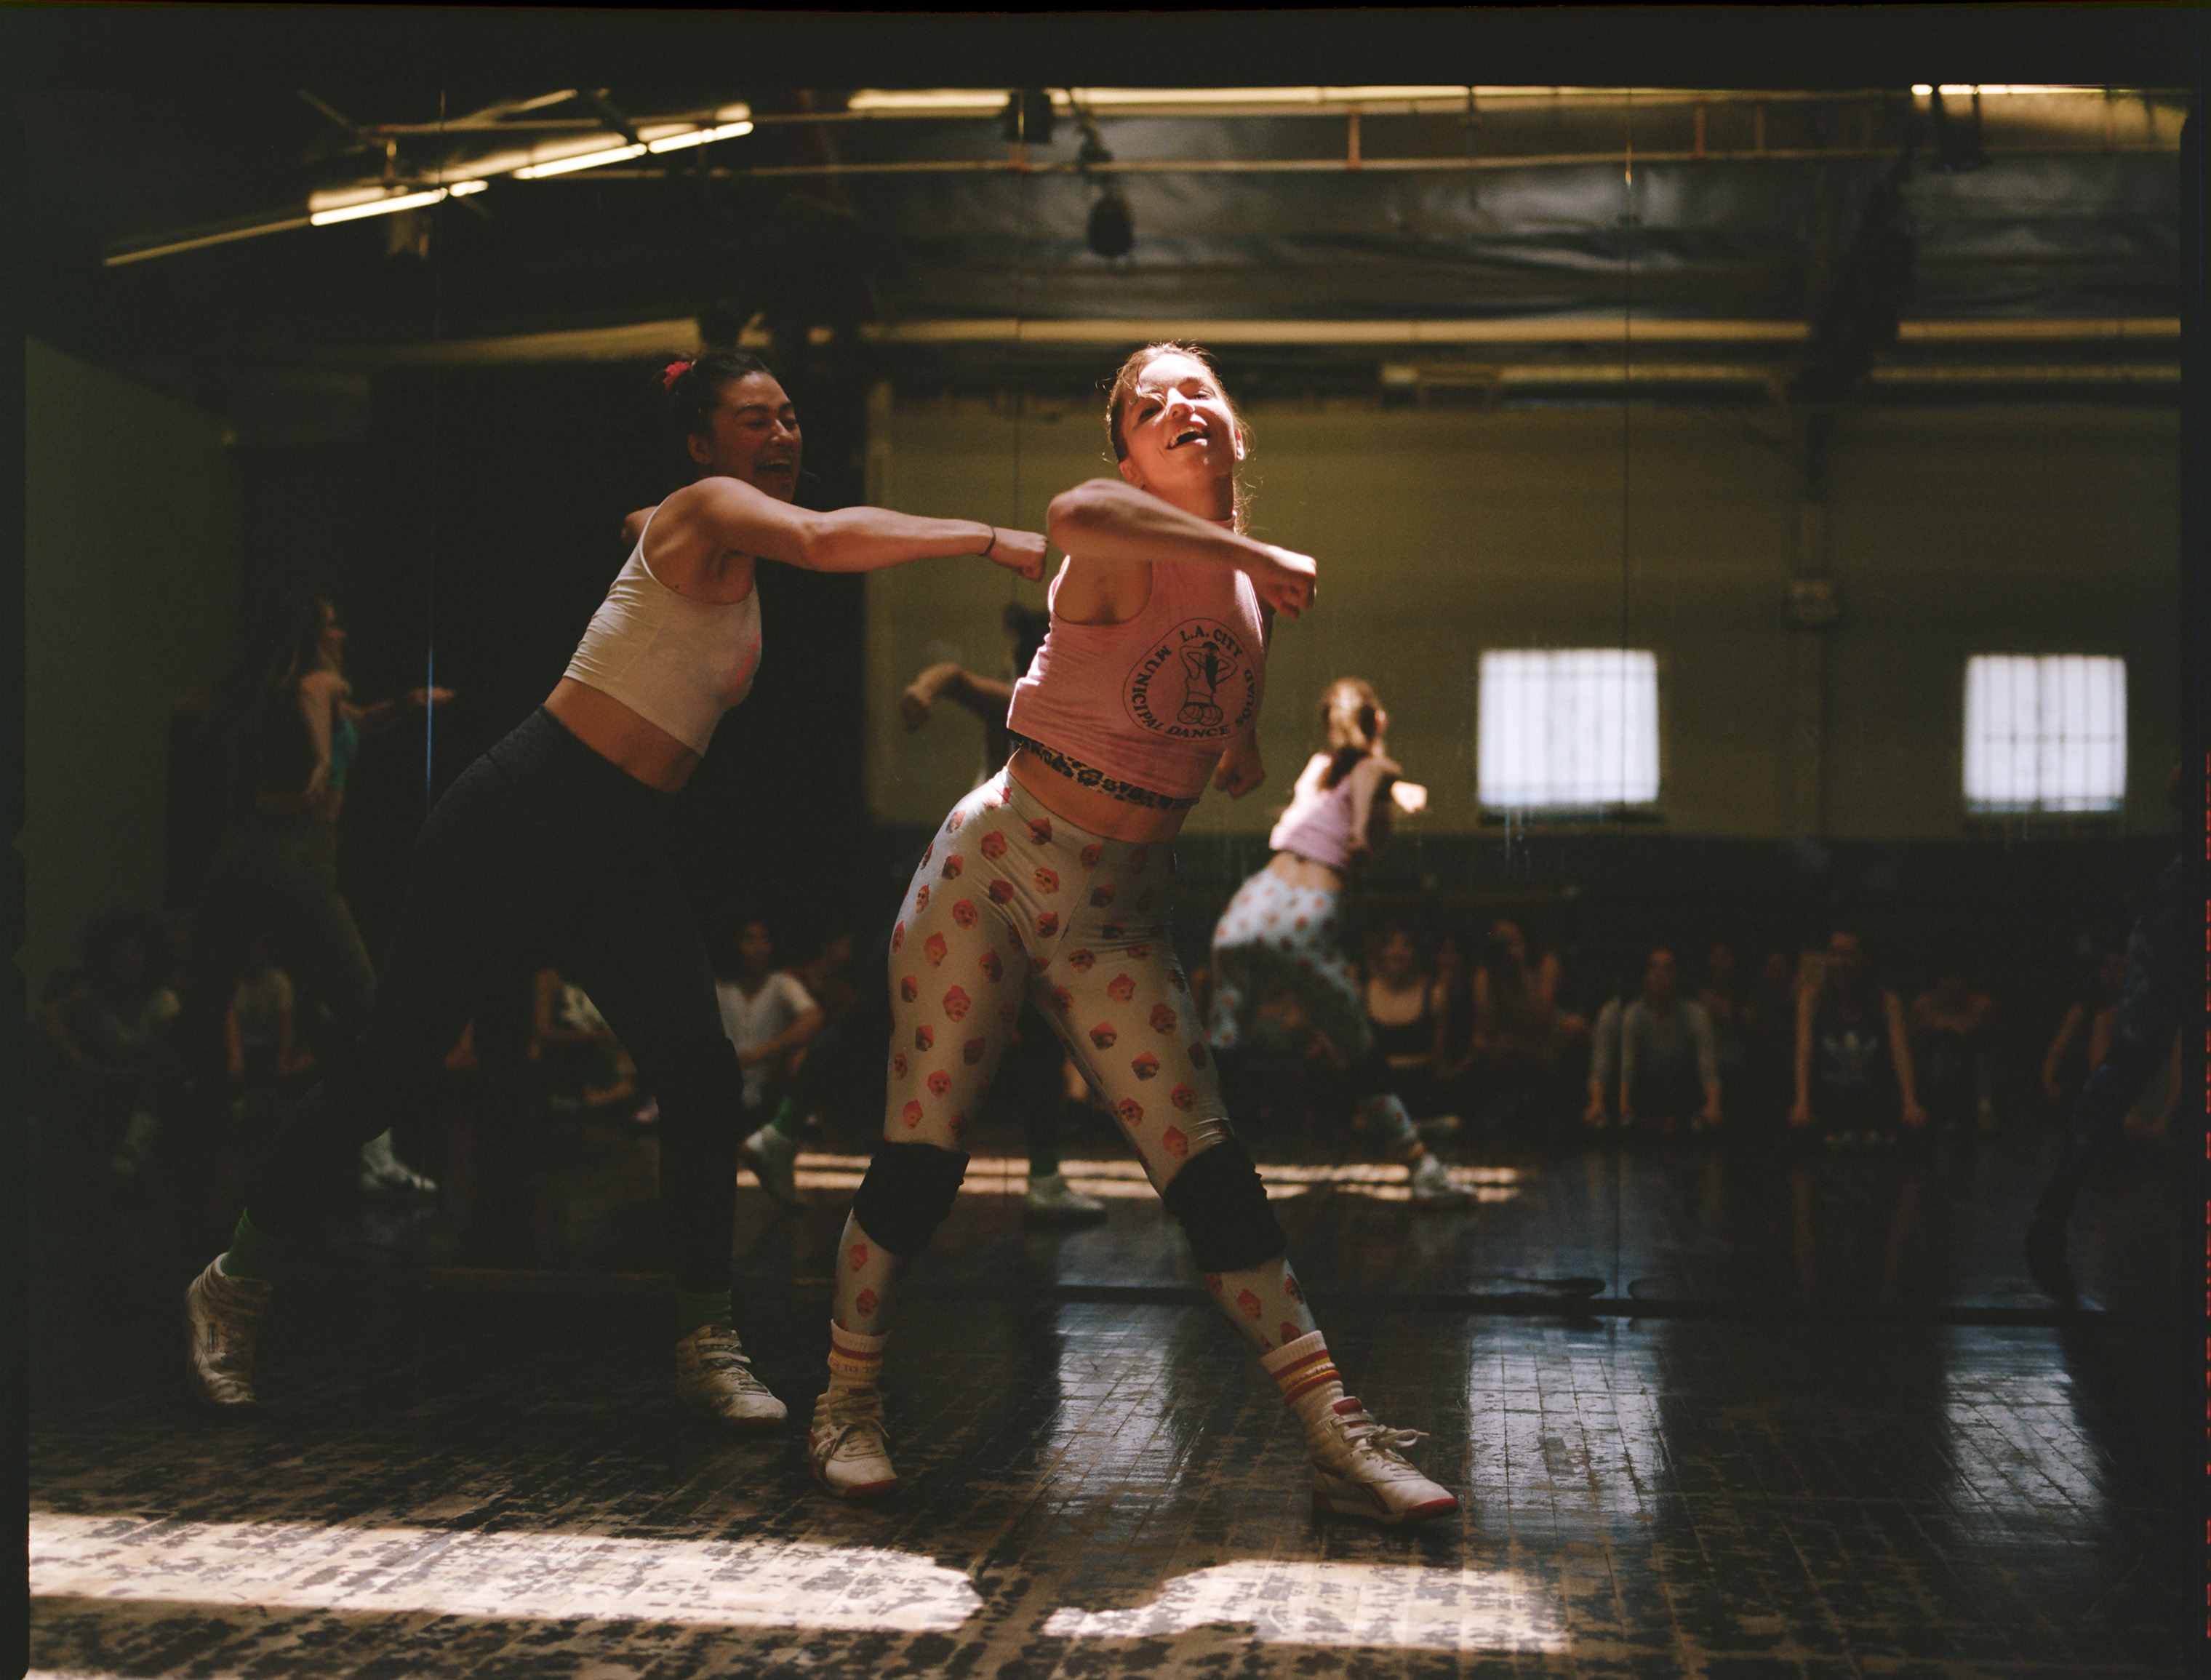 Bonnie Hernandez and Angela Trimbur choreograph the squad's routines together.